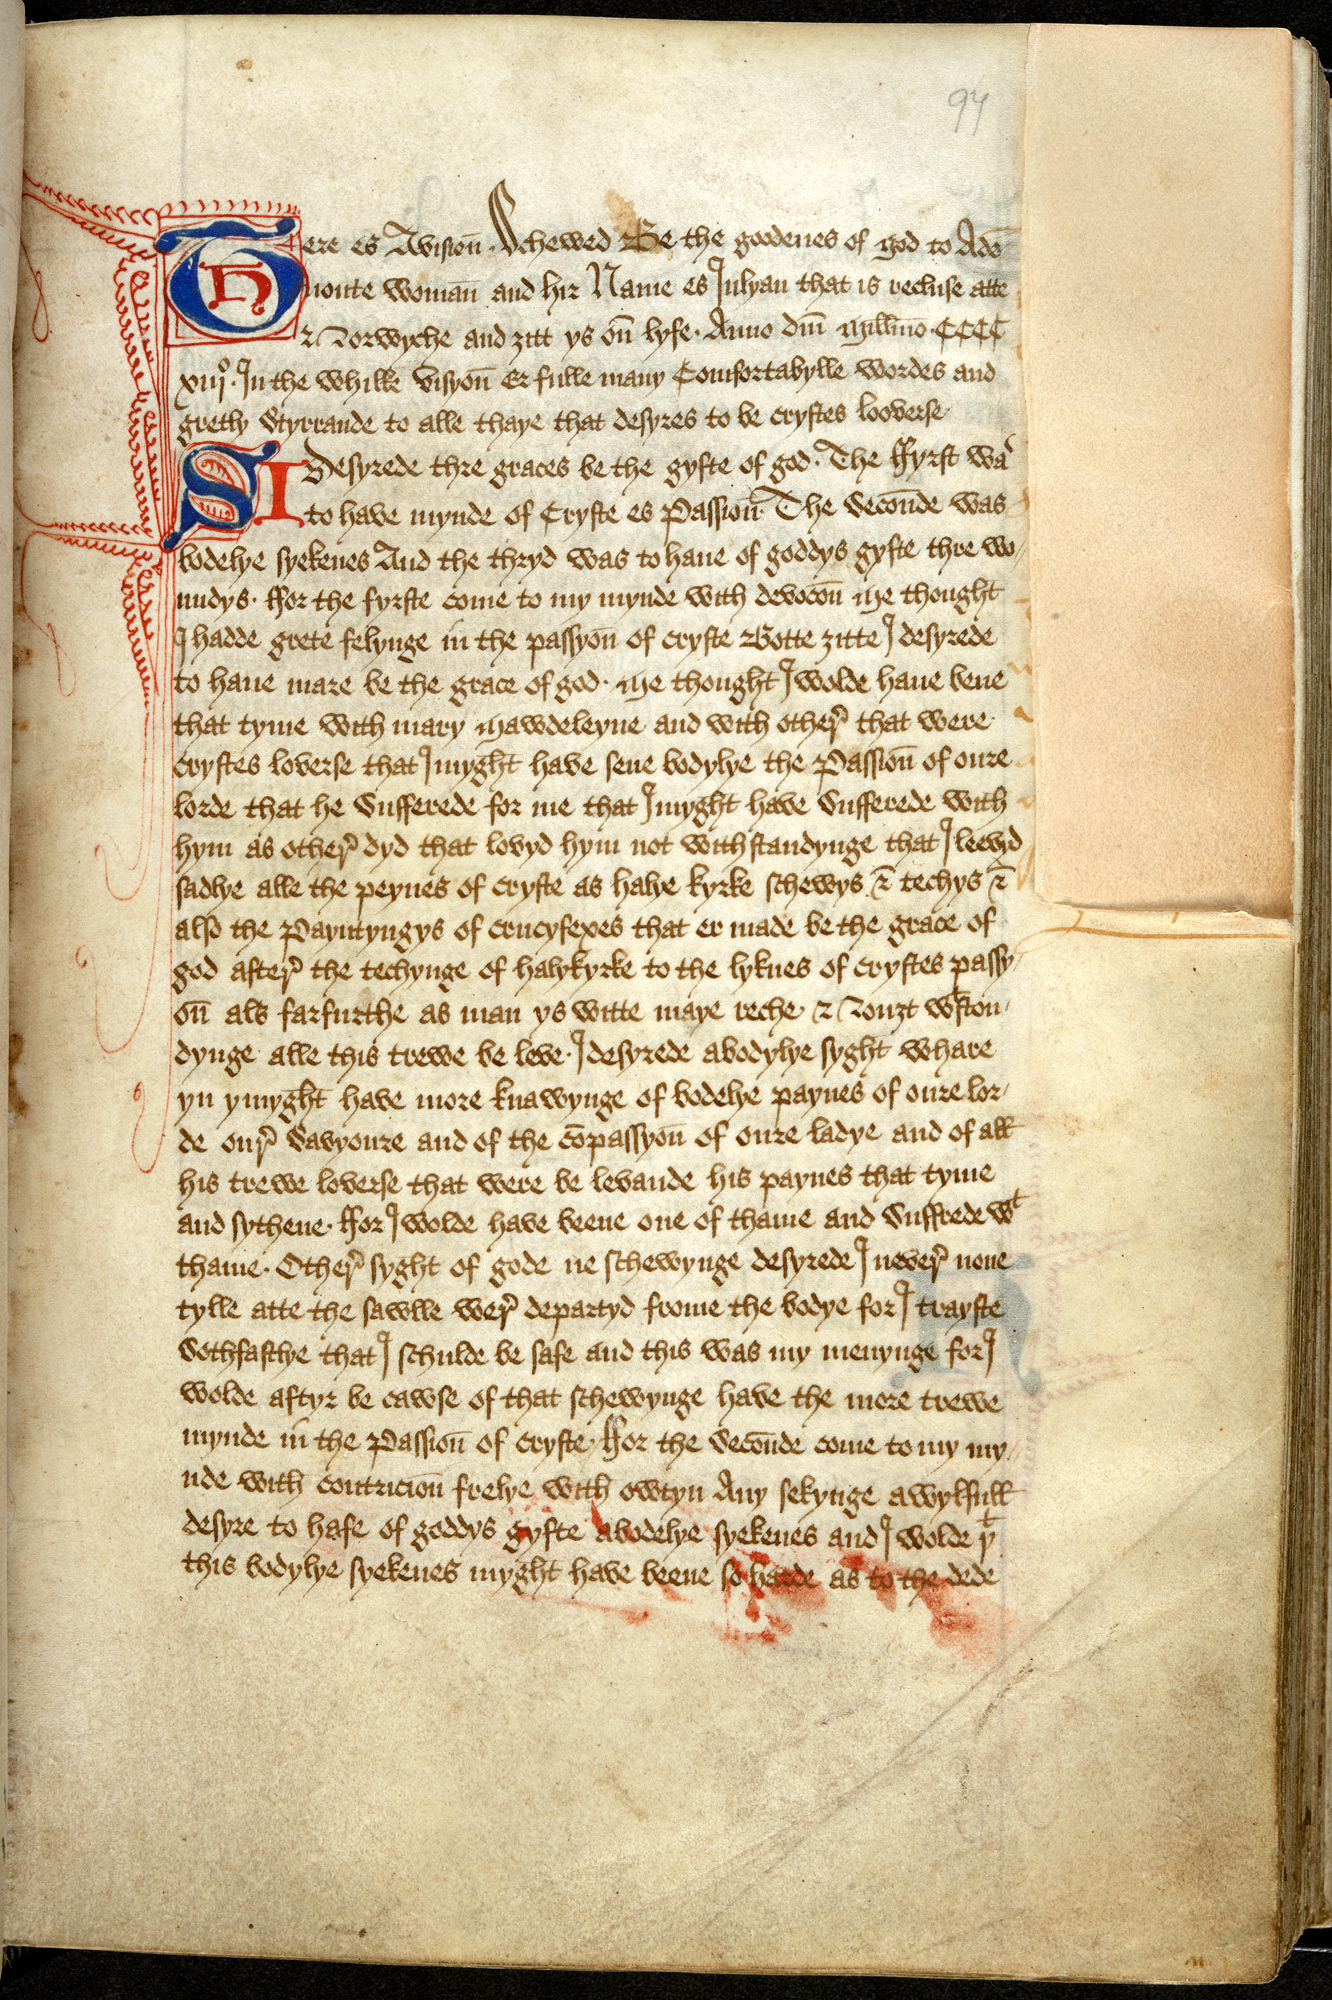 Julian of Norwich's Revelation of Divine Love, the first work in English authored by a woman (Add MS 37 790) (c) British Library Board